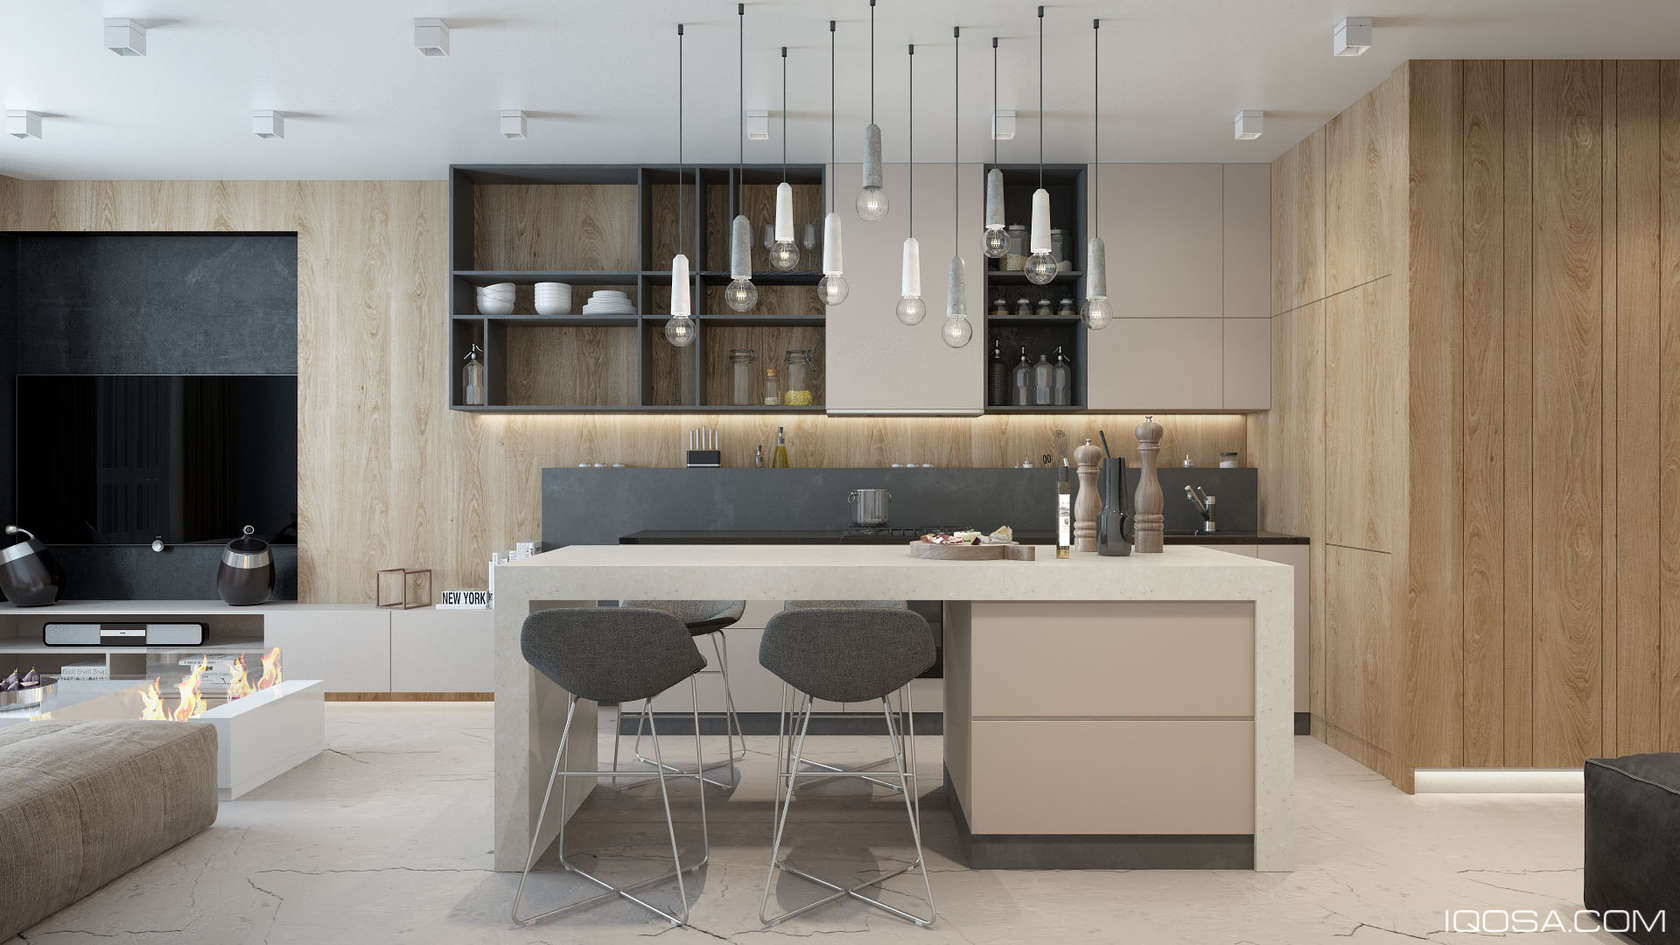 Kitchen Cabinet Faces 50 Modern Kitchen Designs That Use Unconventional Geometry